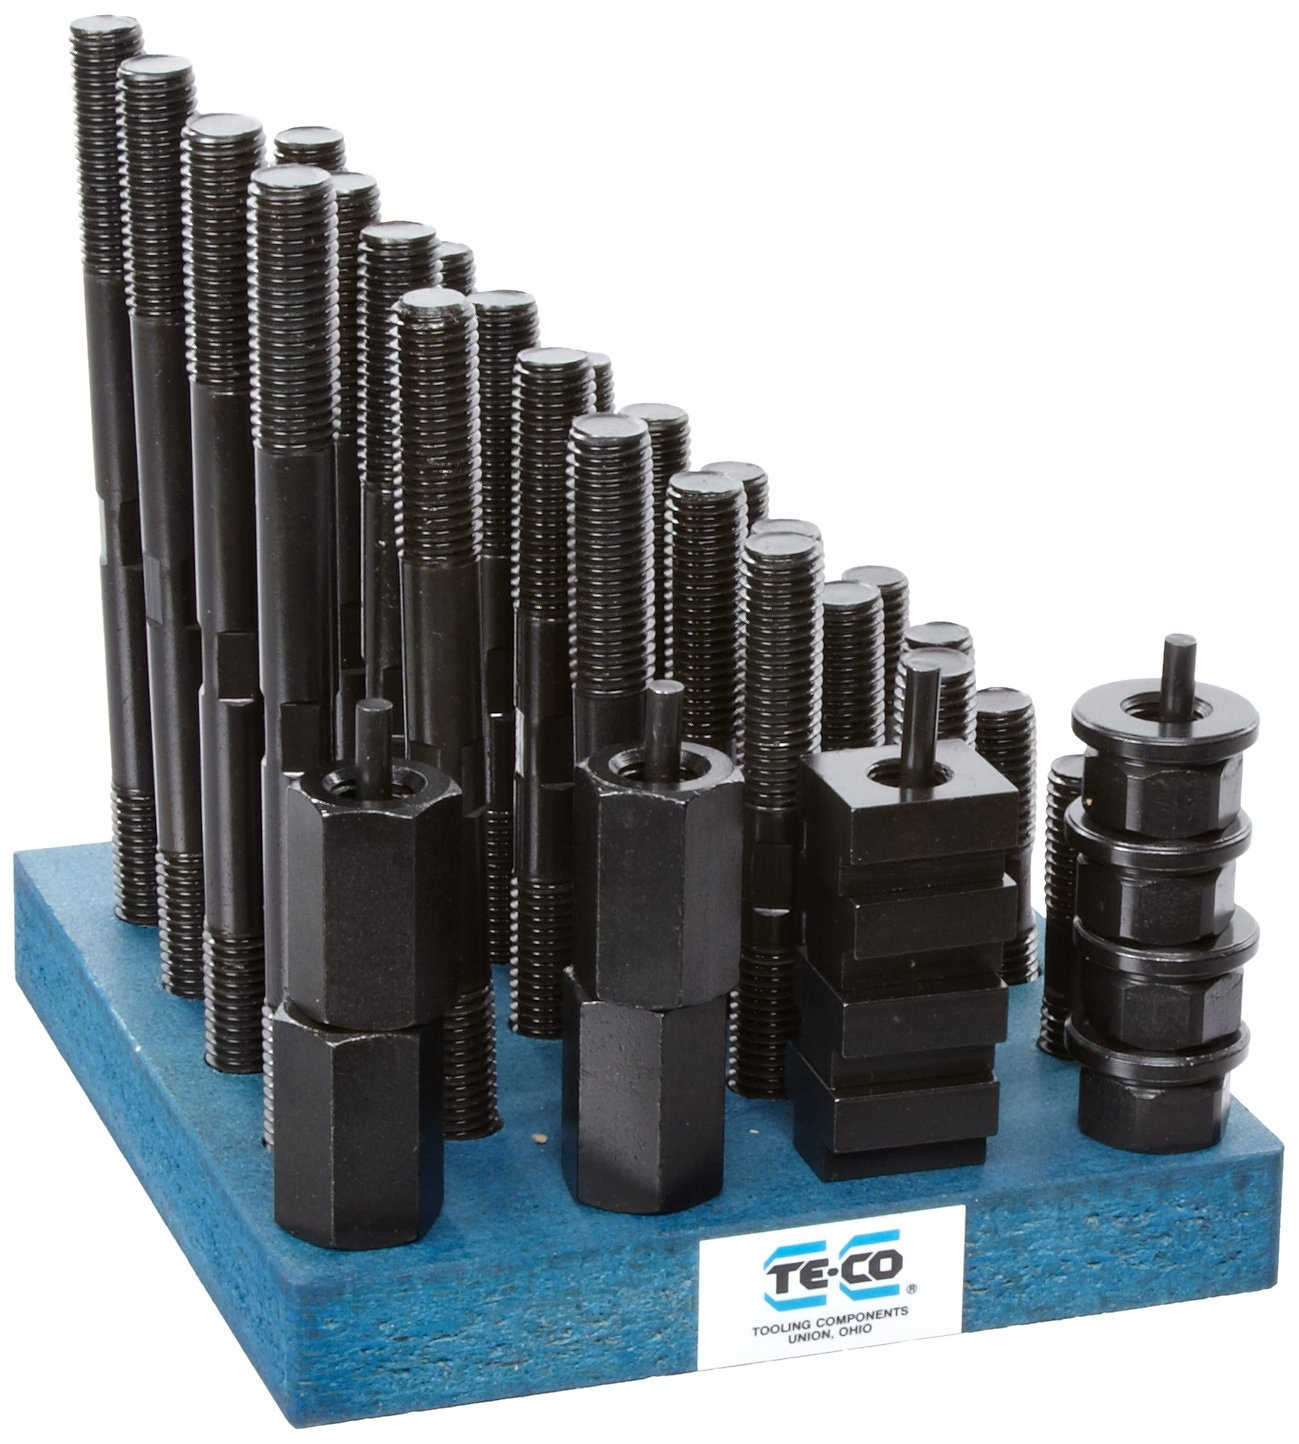 Te-Co 20608 38 Piece T-Nut and Stud Kit, 5/8''-11 Stud x 11/16'' Table T-Slot by Small Parts